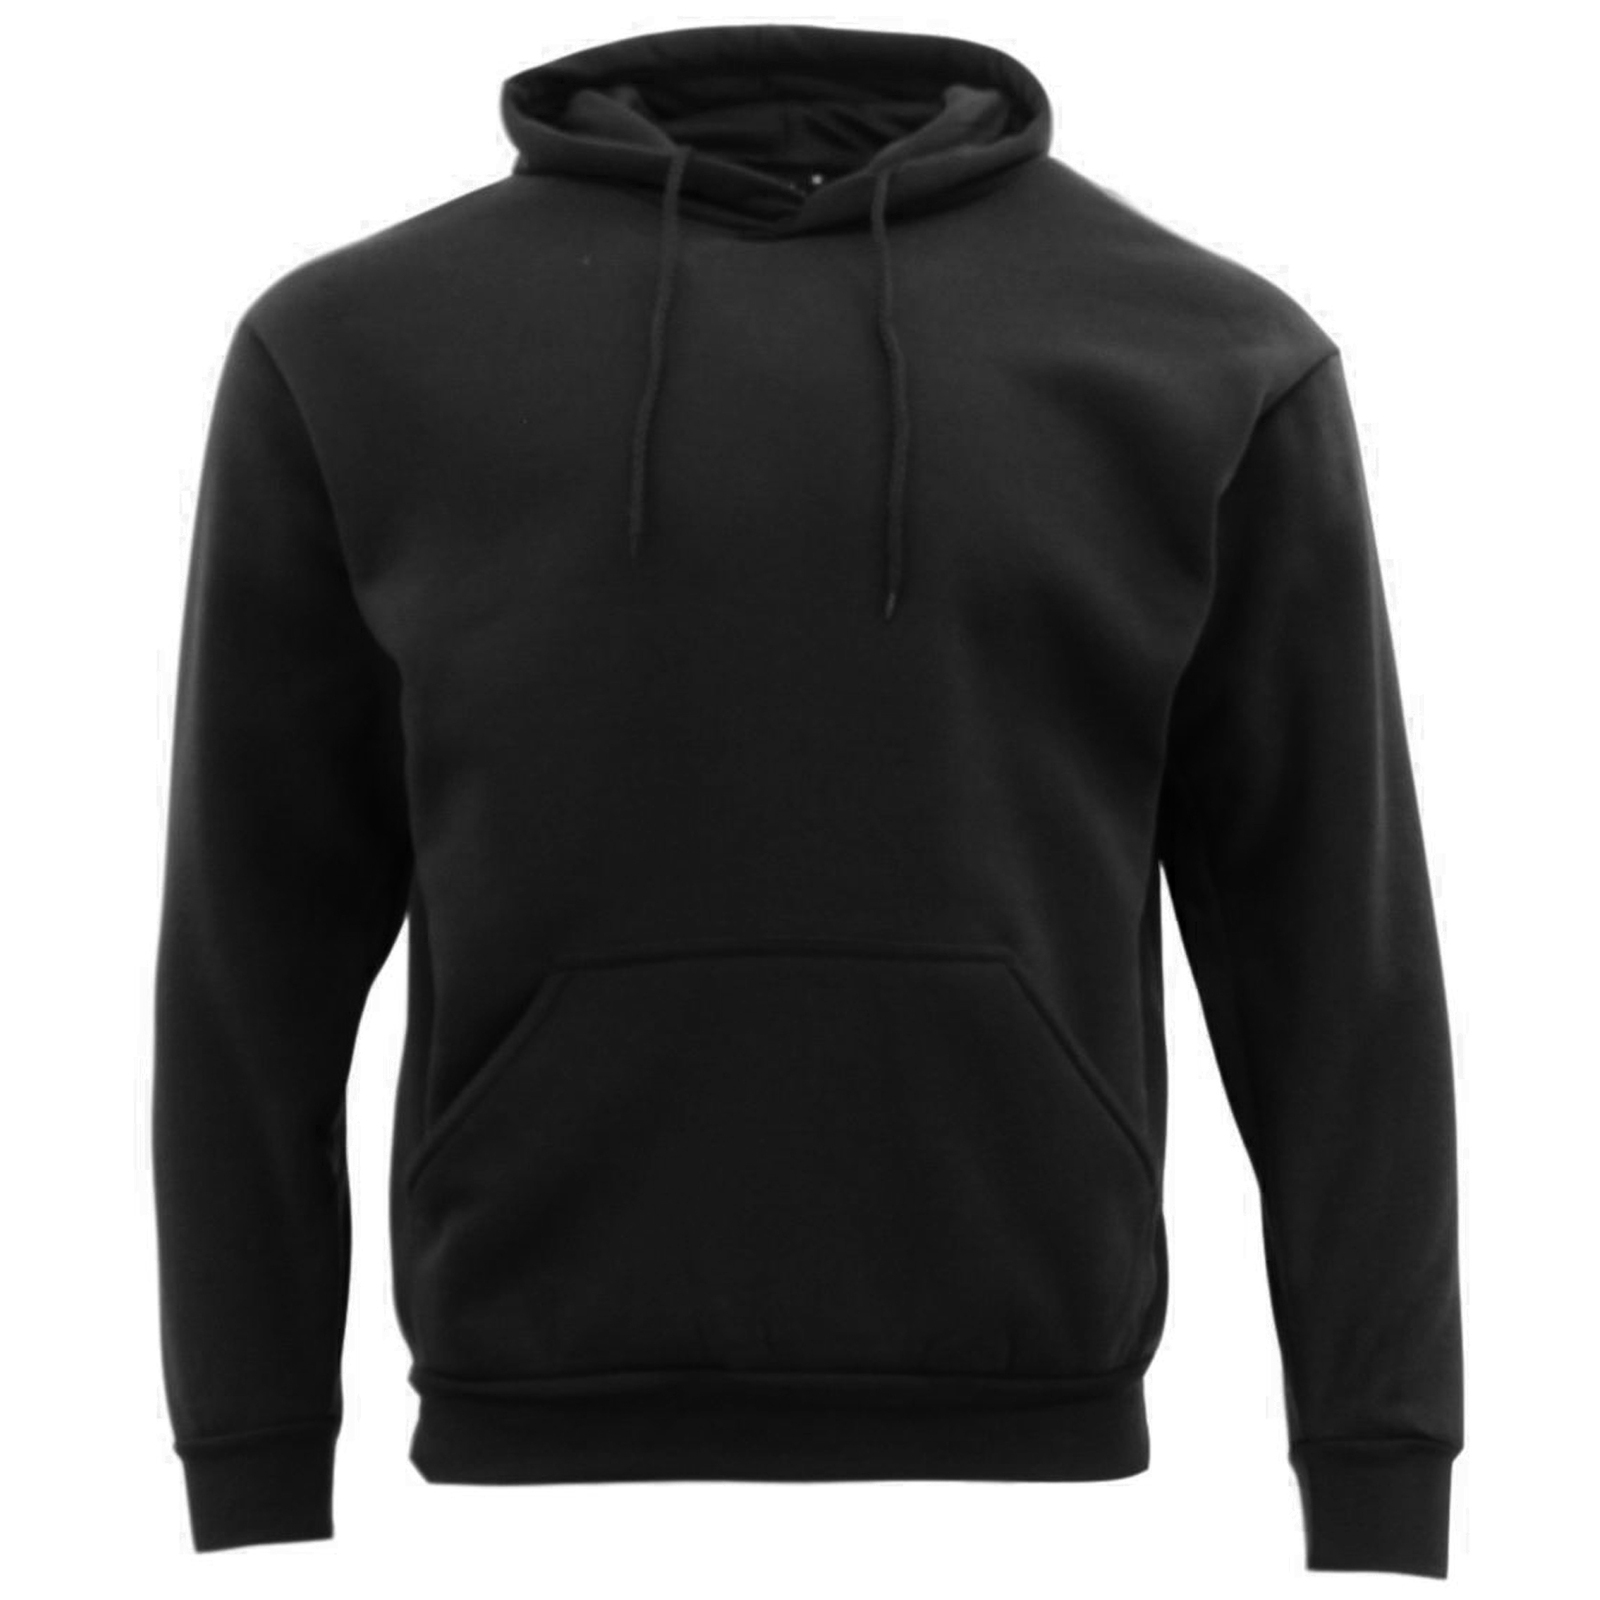 Adult-Men-039-s-Unisex-Basic-Plain-Hoodie-Jumper-Pullover-Sweater-Sweatshirt-XS-5XL thumbnail 4